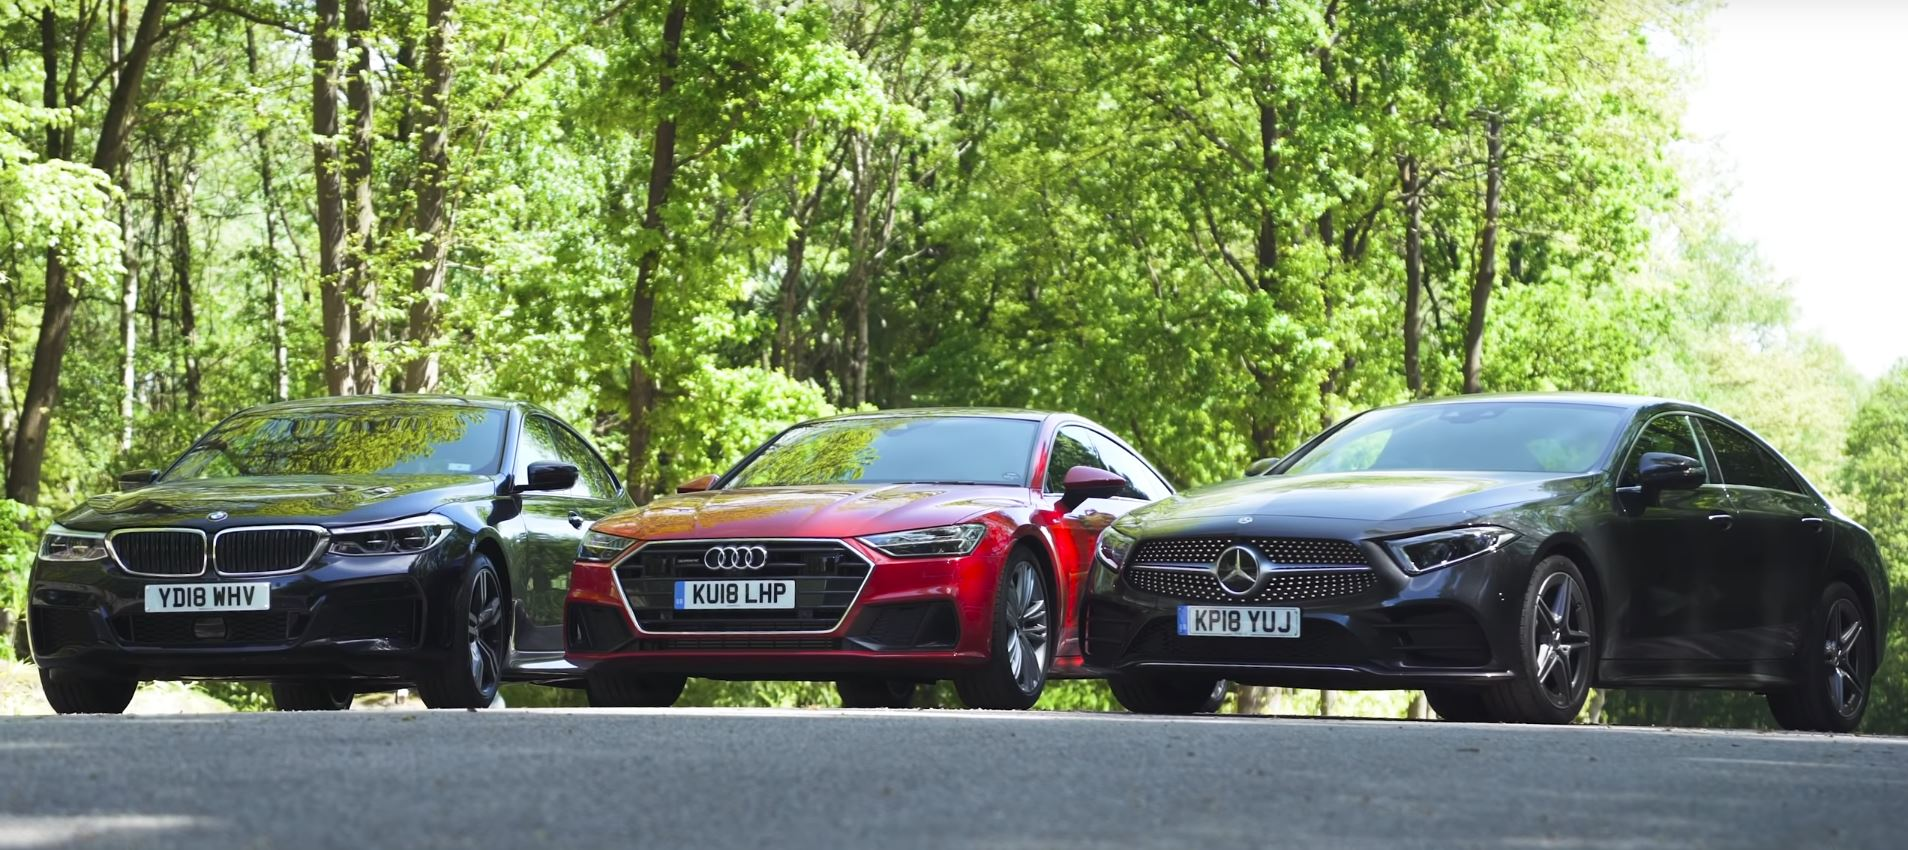 2019 Audi A7 50 TDI Gets Cool Backfire Thanks to Active